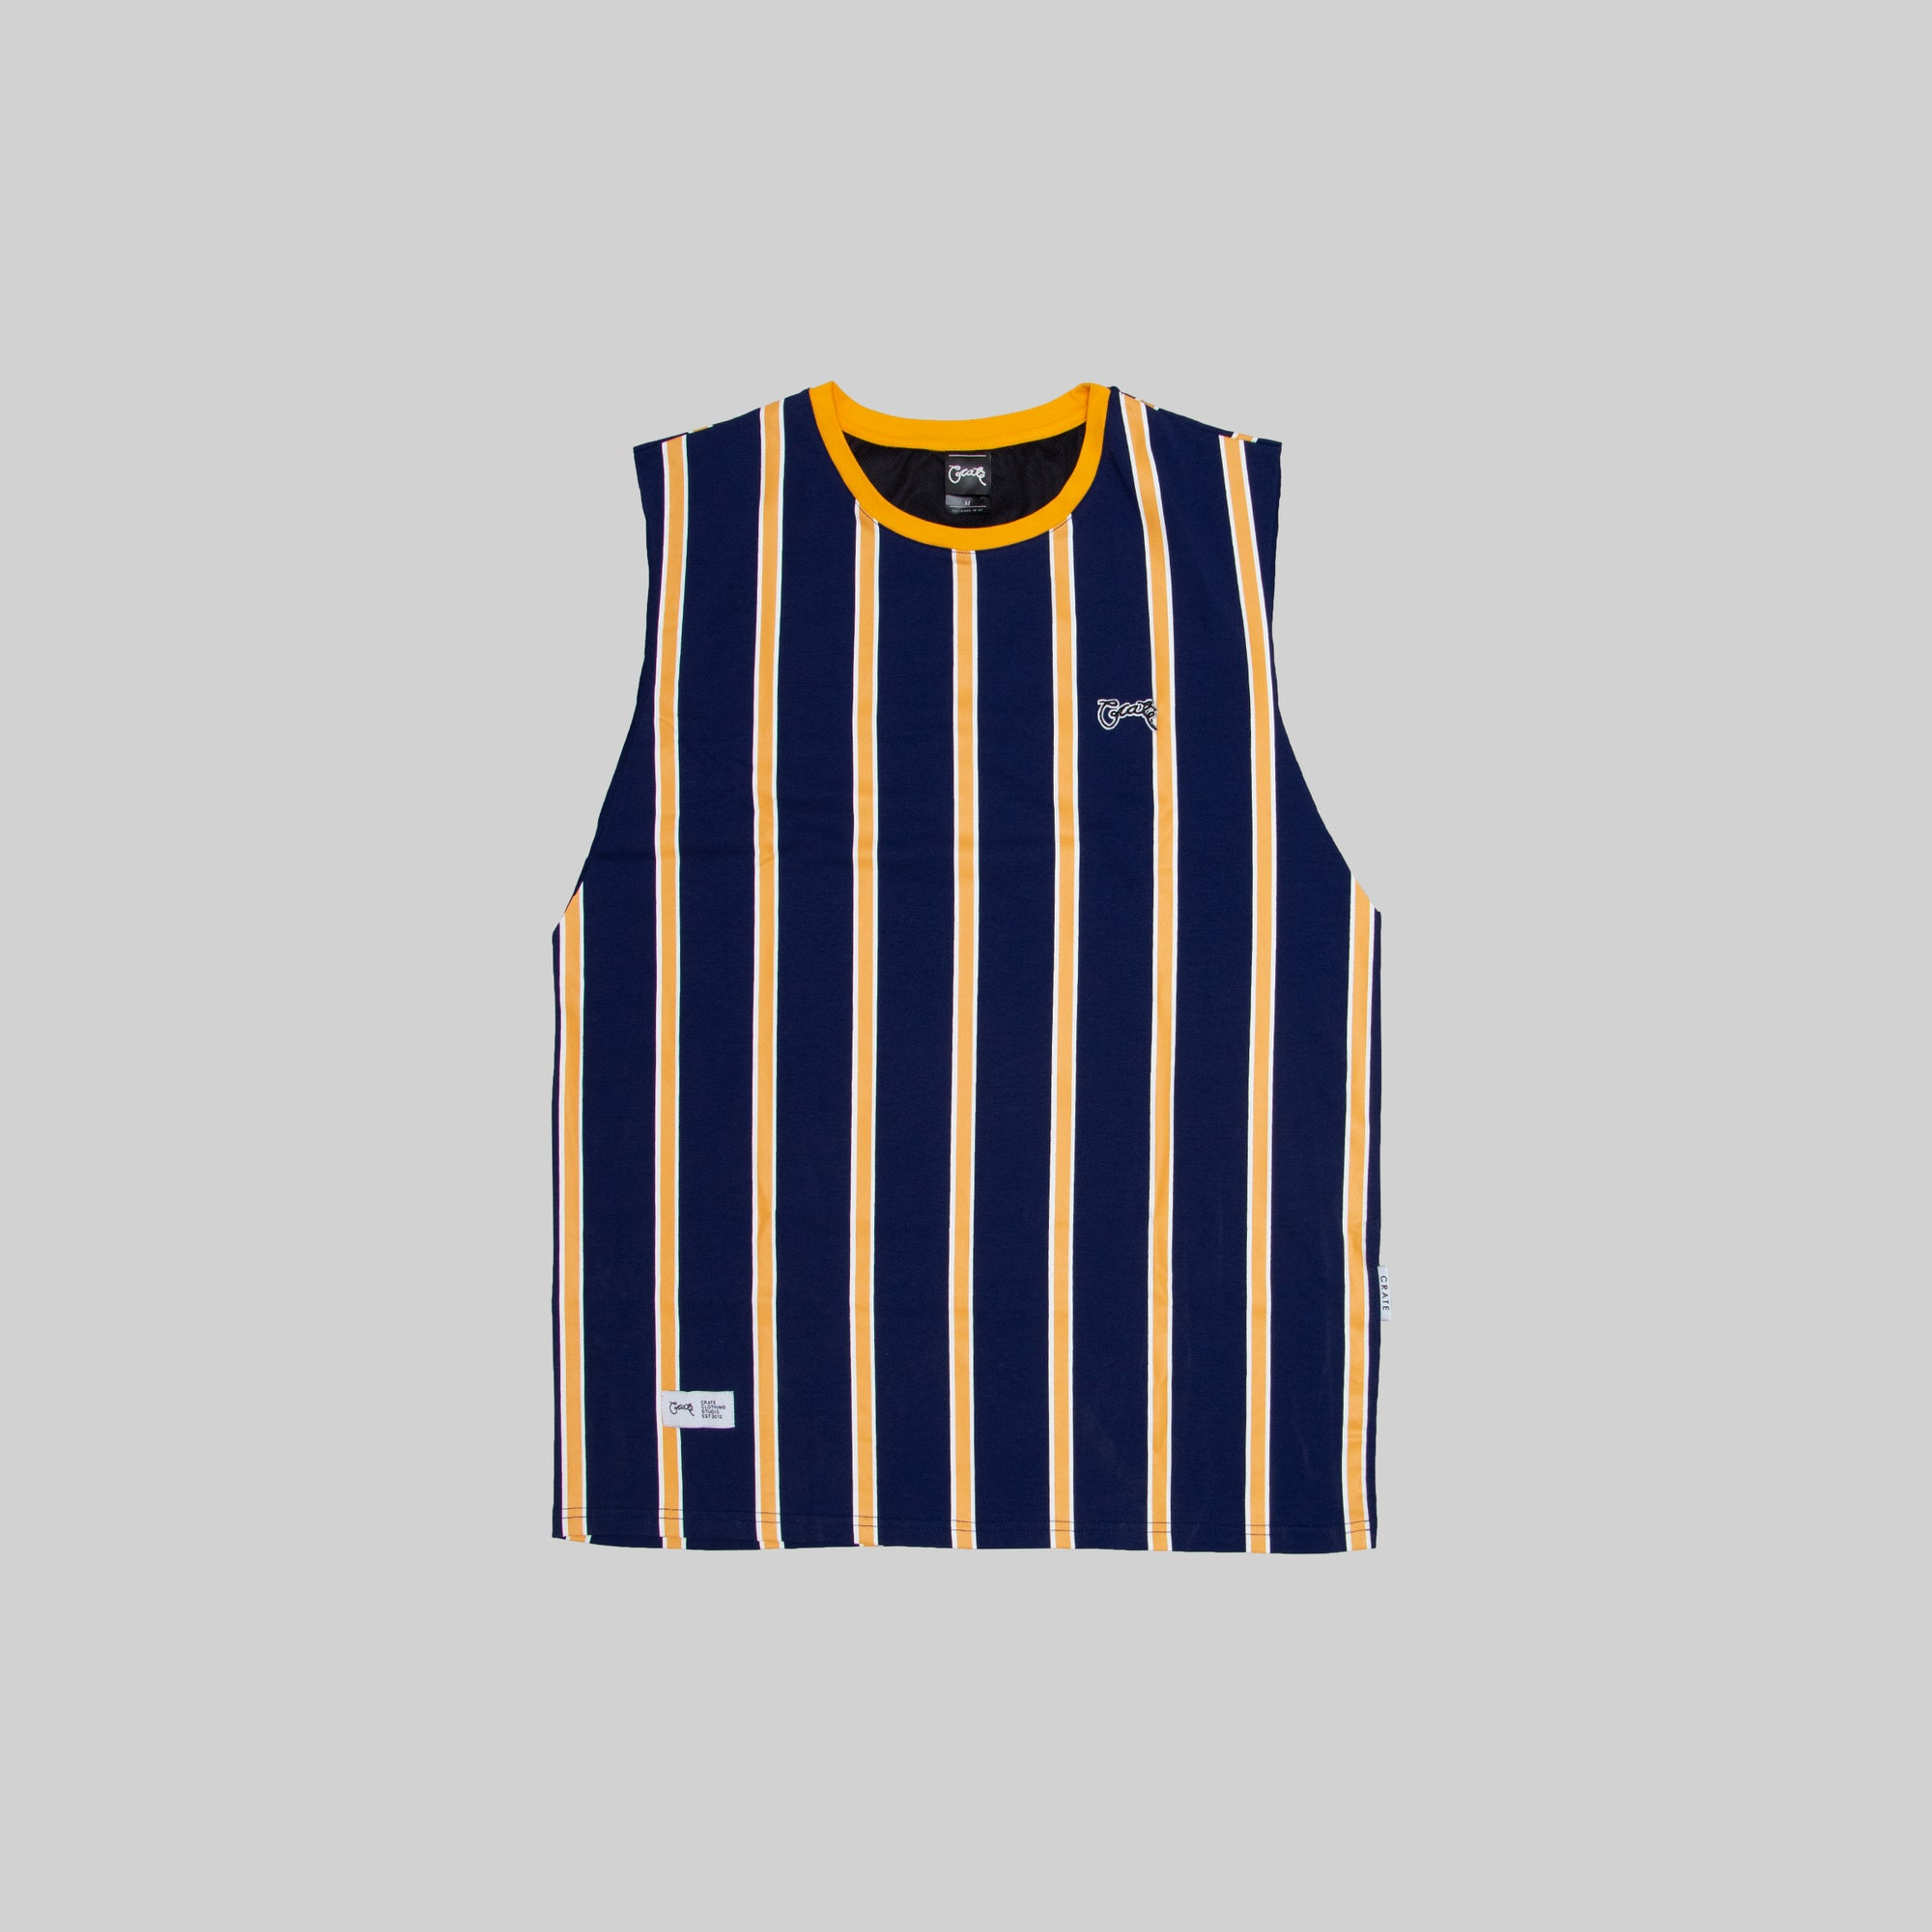 Mens Navy/Gold Stripe Muscle T-Shirt